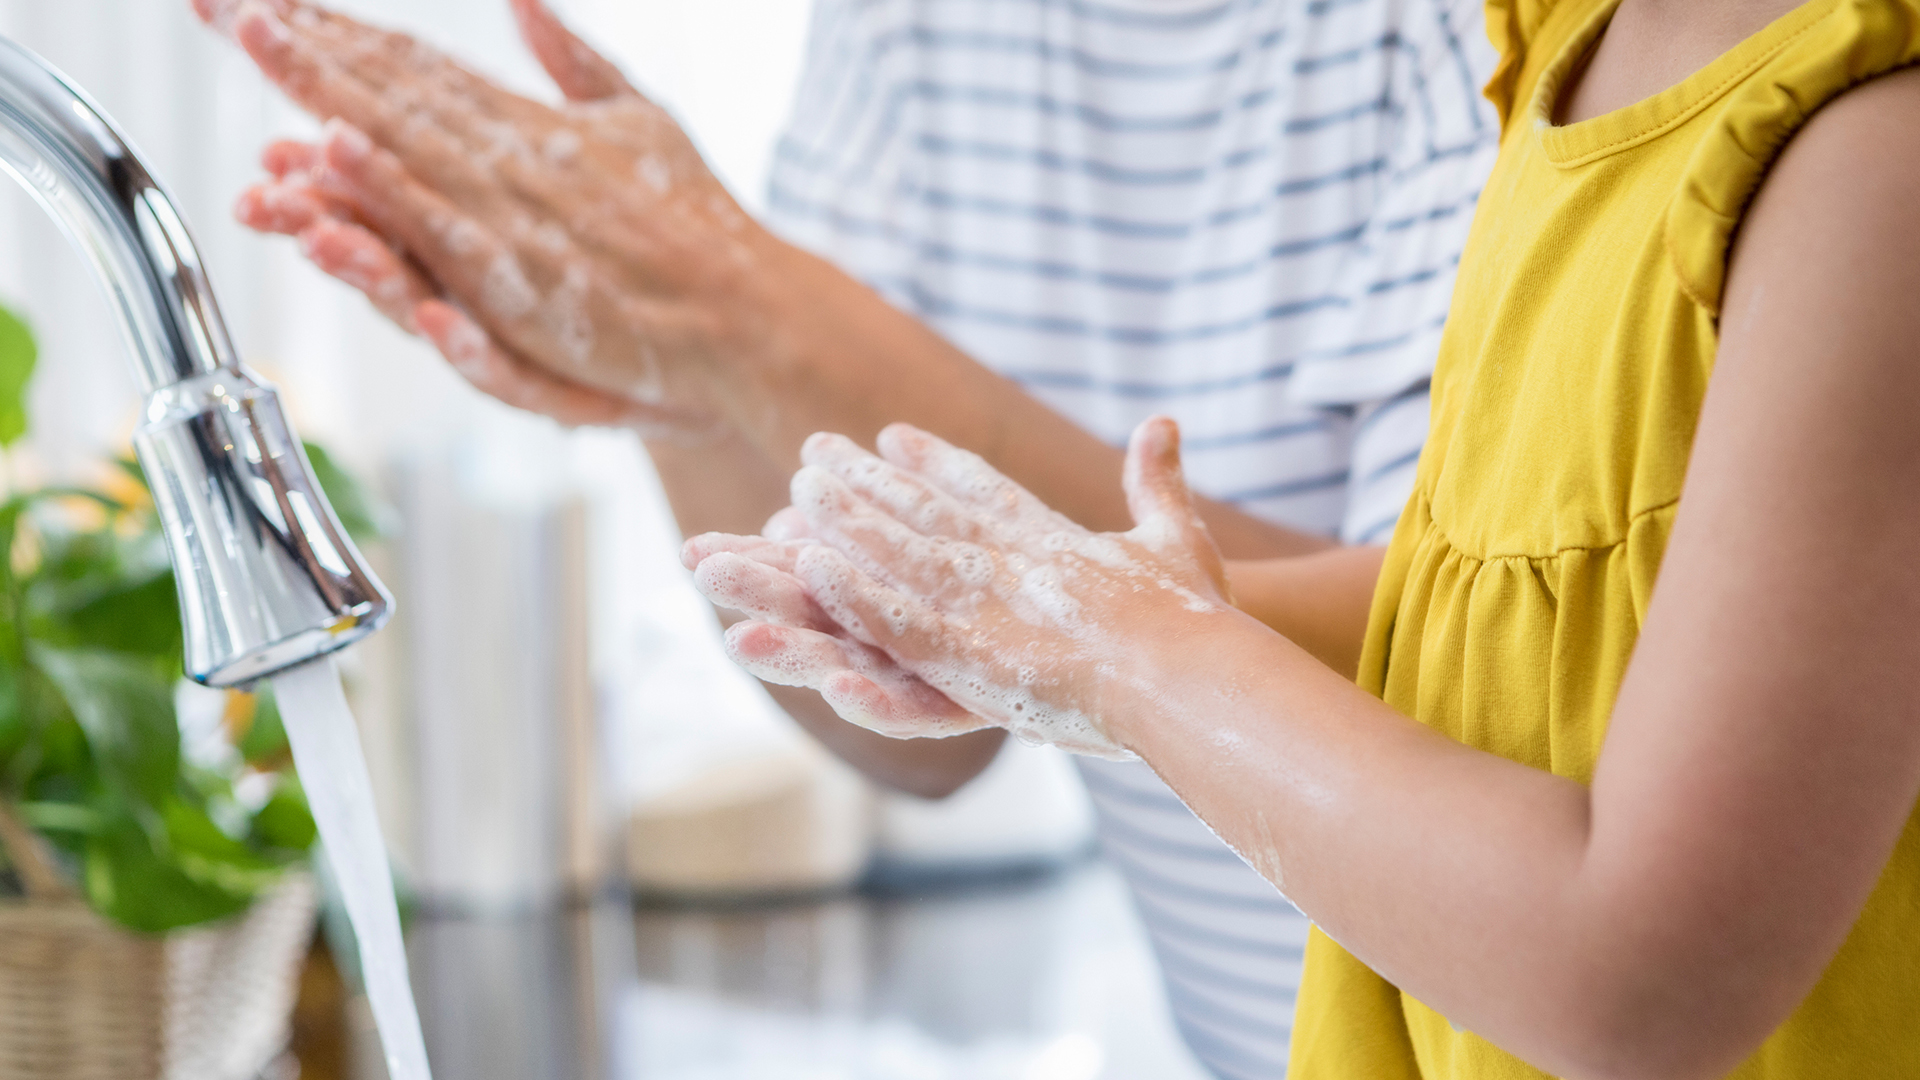 Kids encounter multiple viruses at the start of a new school year. Here are some ways parents can fight germs and stay healthy, too.